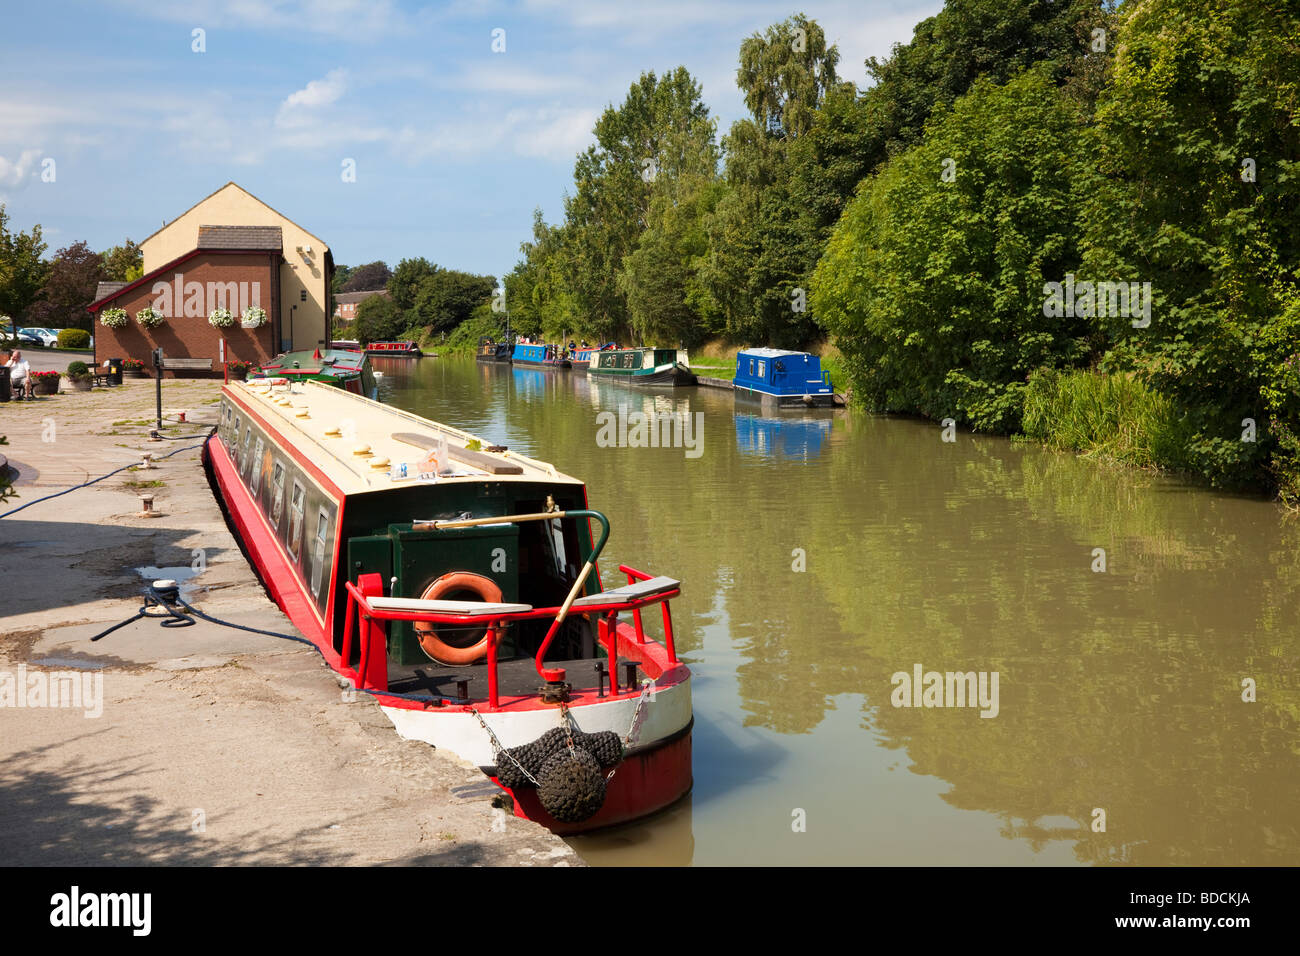 Narrowboats canal boat uk on the Kennet and Avon Canal at Devizes, Wiltshire, England, UK - Stock Image